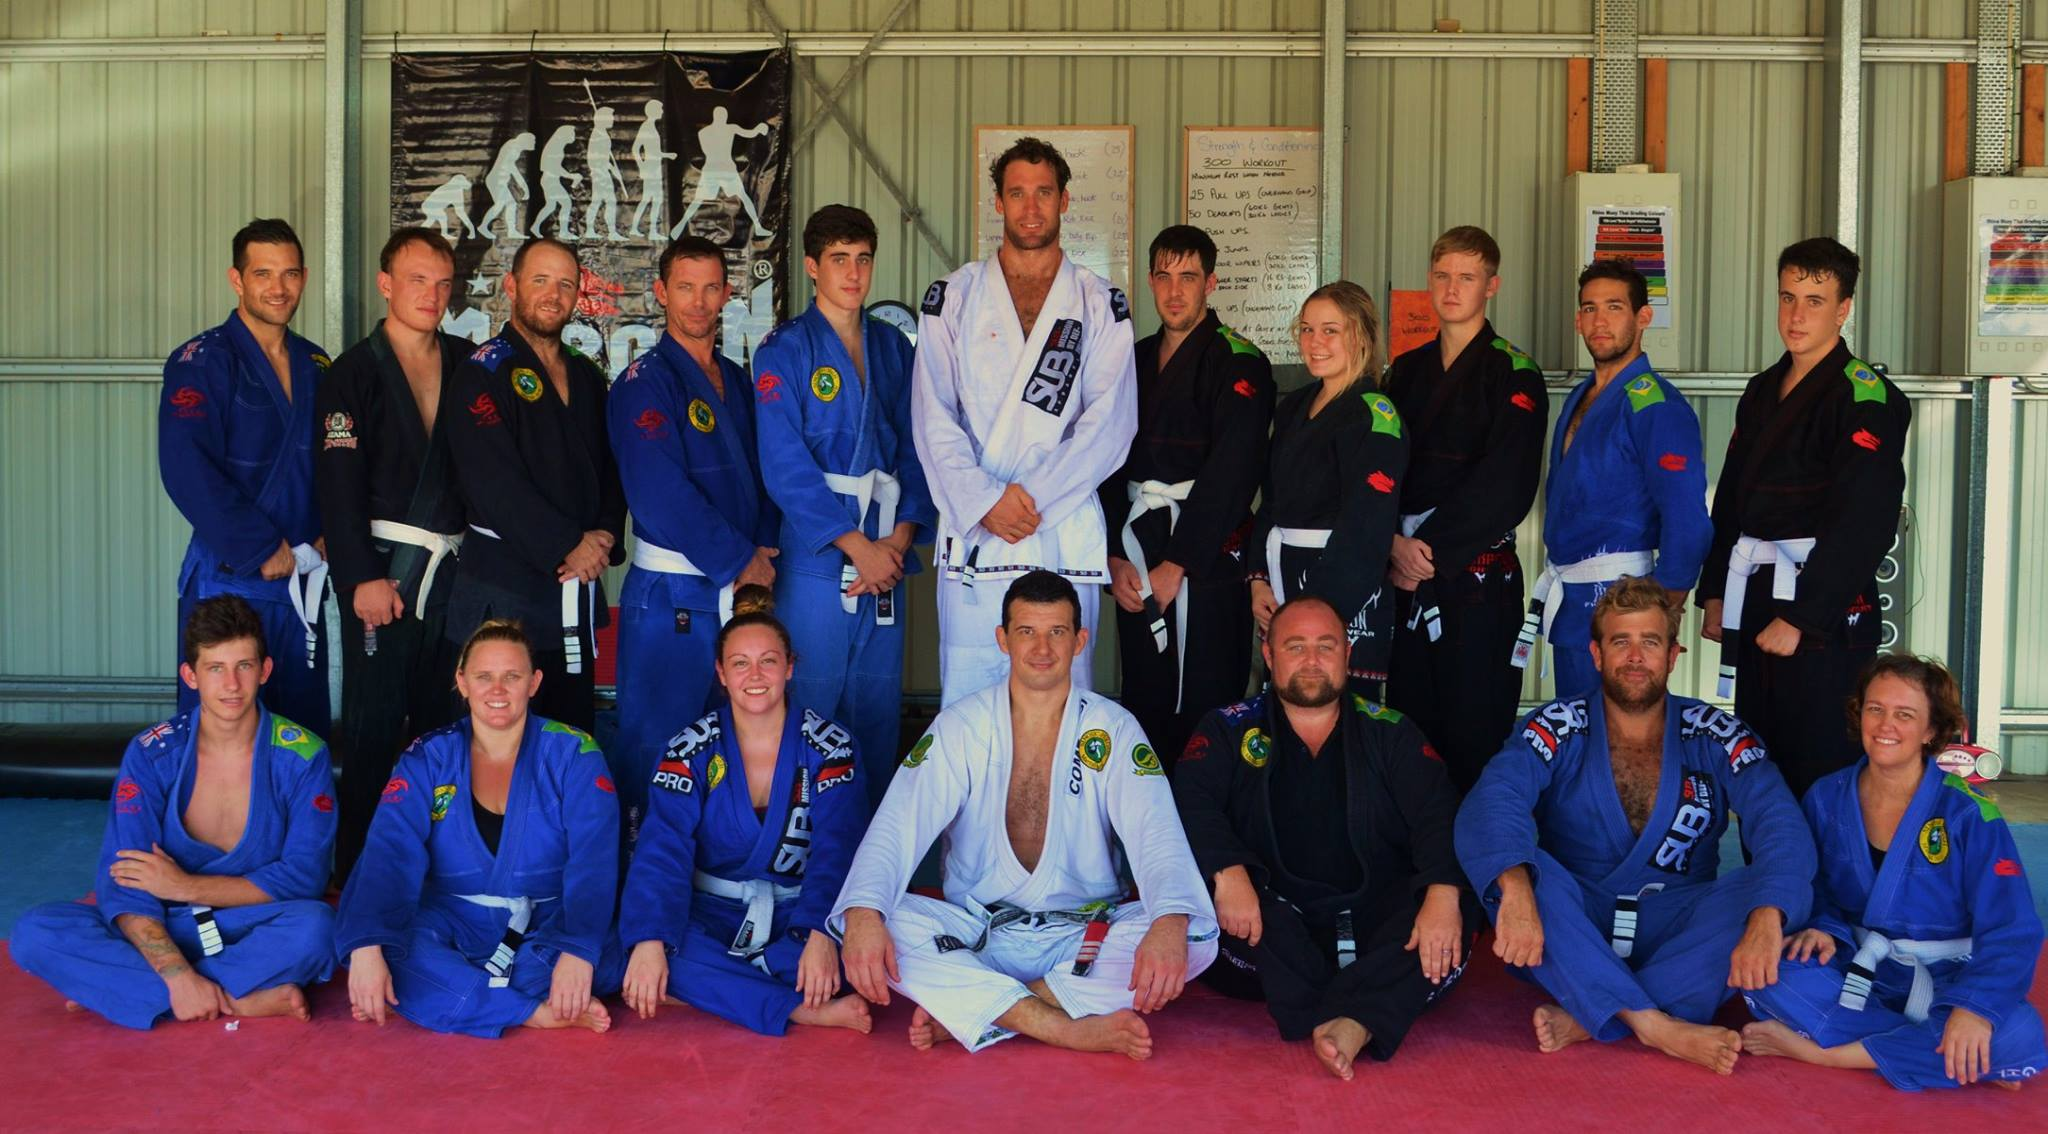 Yeppoon BJJ Grading March 2014